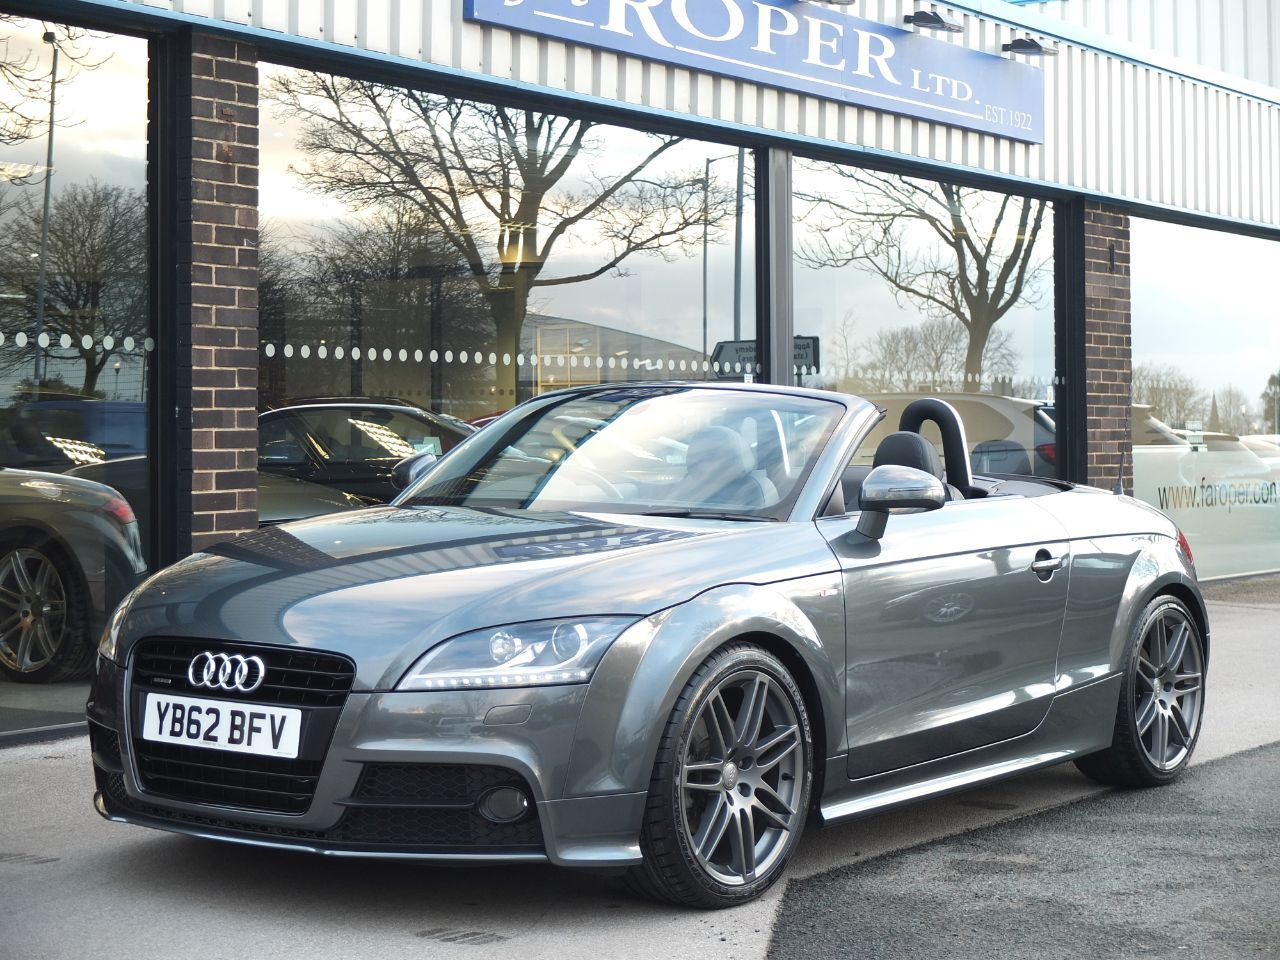 Audi TT Roadster 2.0 TDI 170 ps quattro Black Edition Convertible Diesel Daytona Grey MetallicAudi TT Roadster 2.0 TDI 170 ps quattro Black Edition Convertible Diesel Daytona Grey Metallic at fa Roper Ltd Bradford